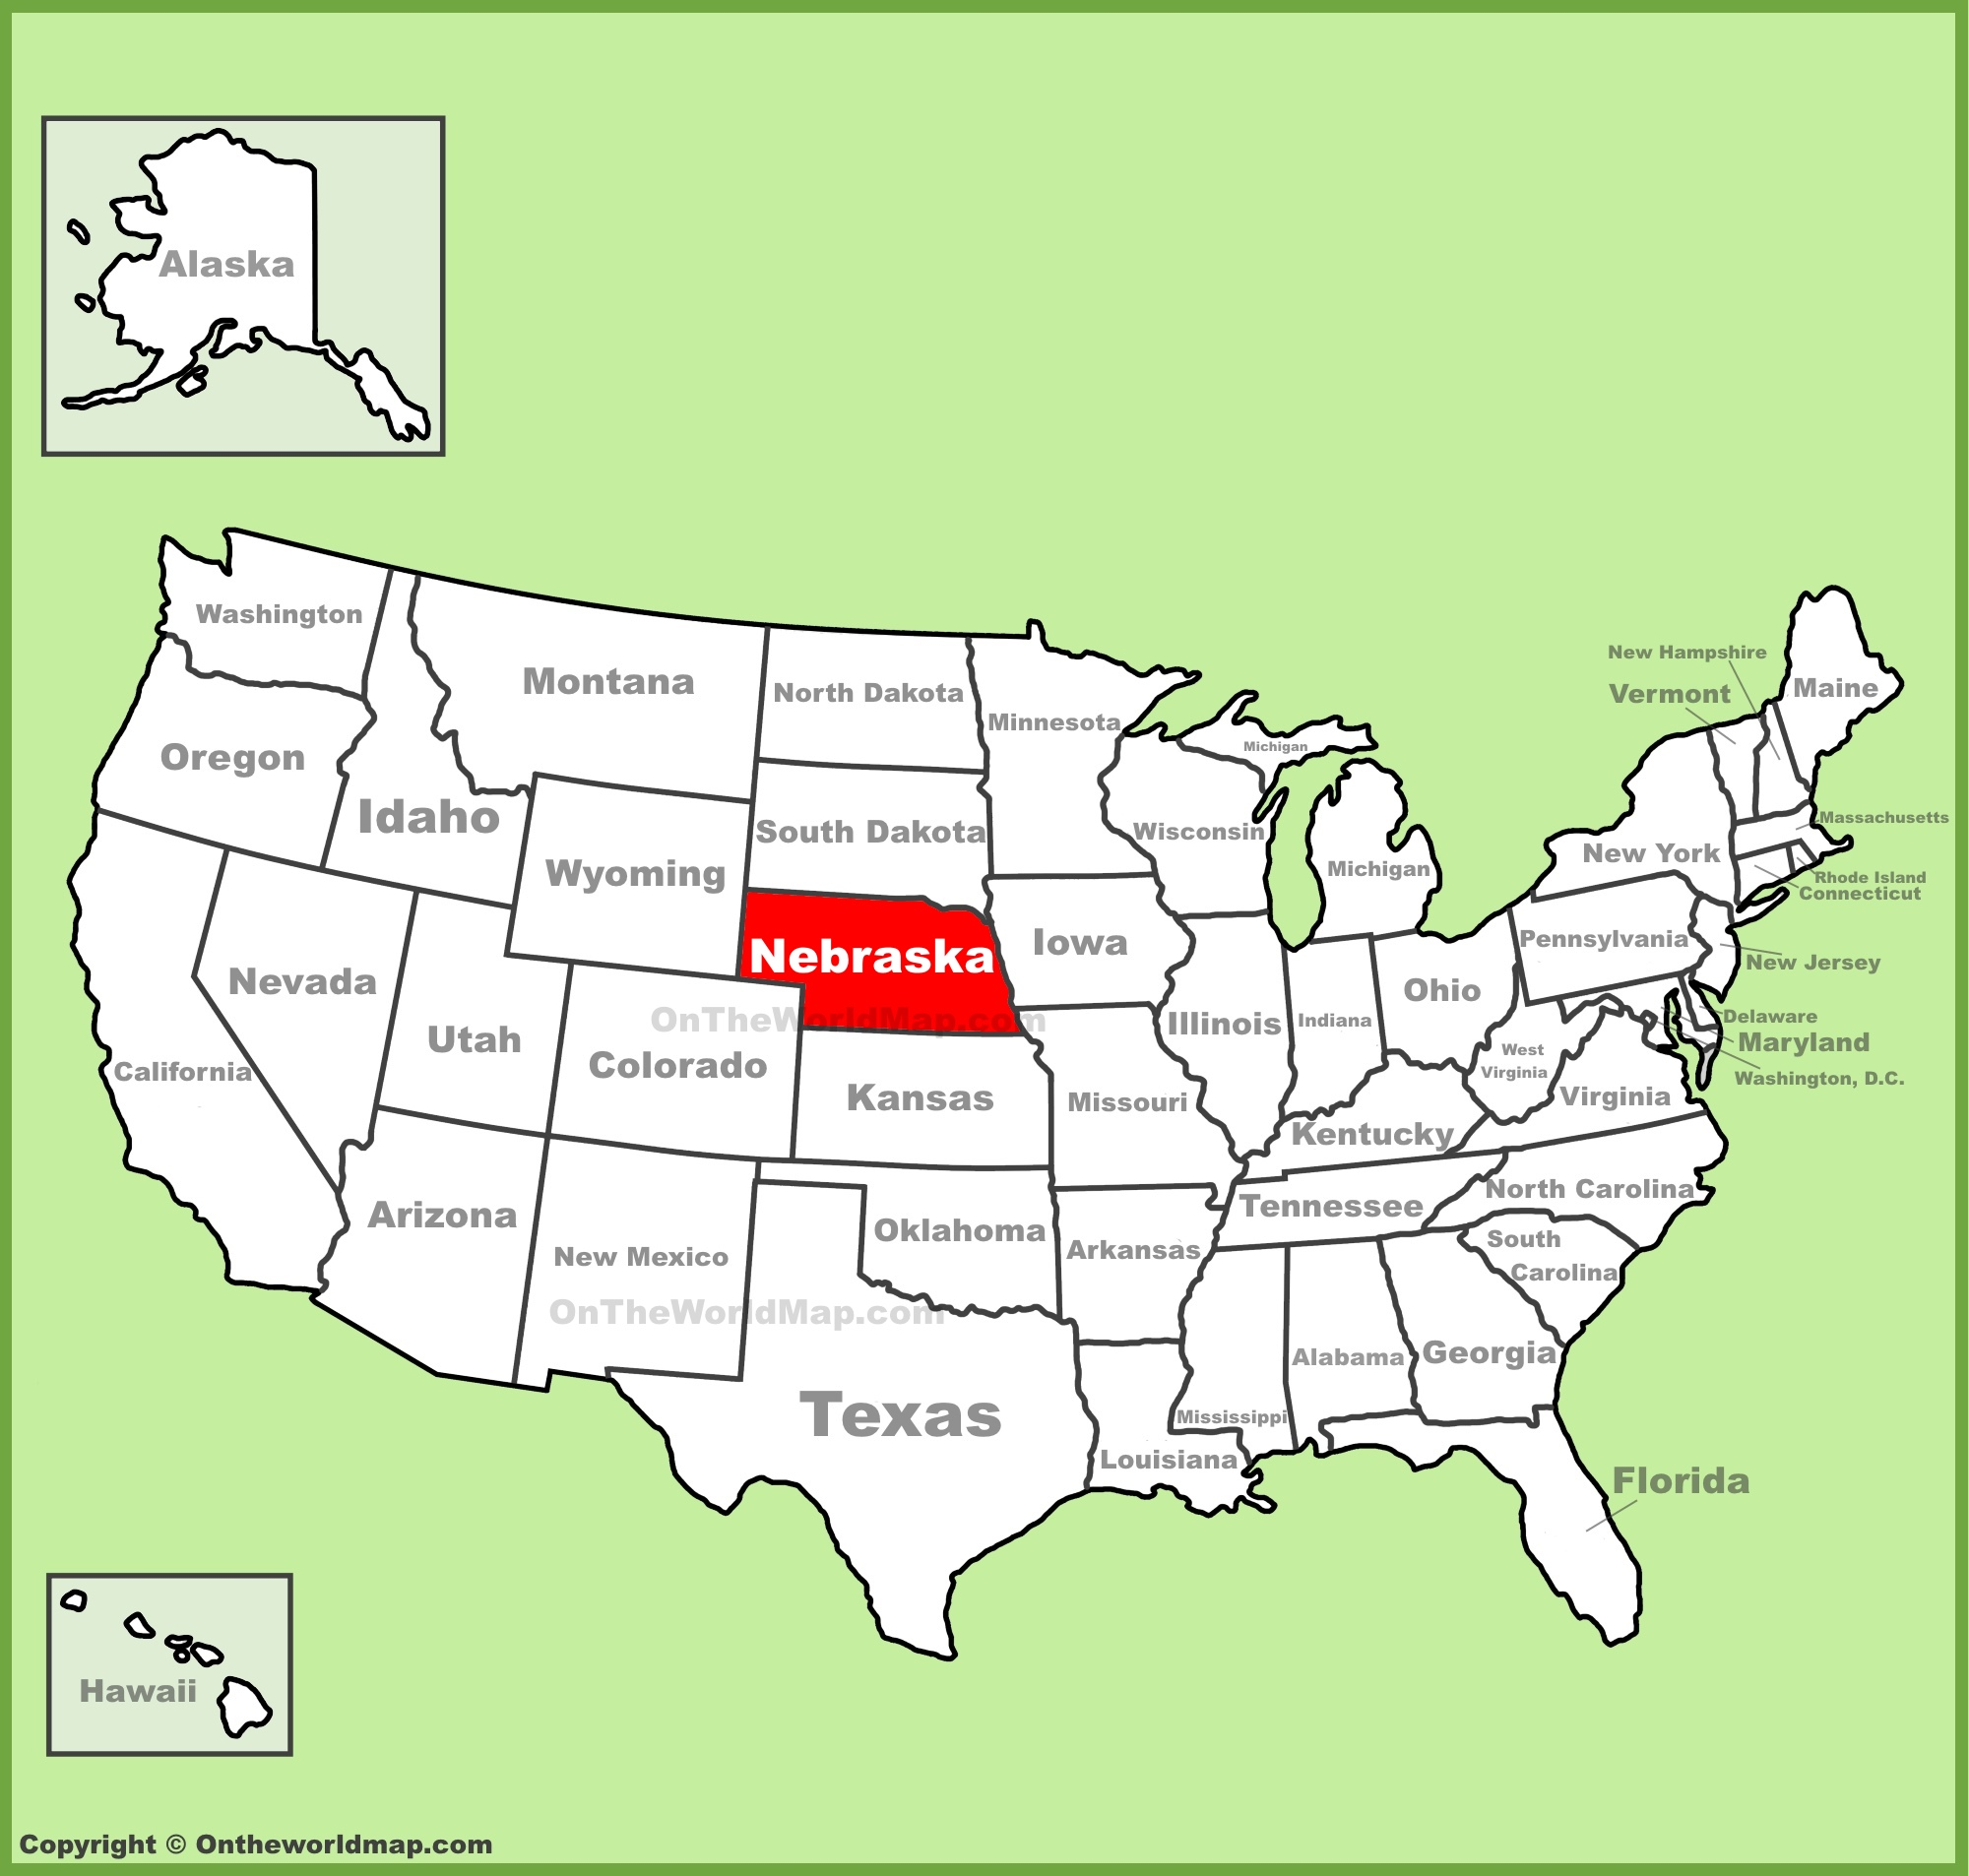 Nebraska Location On The US Map - Nebraska on us map